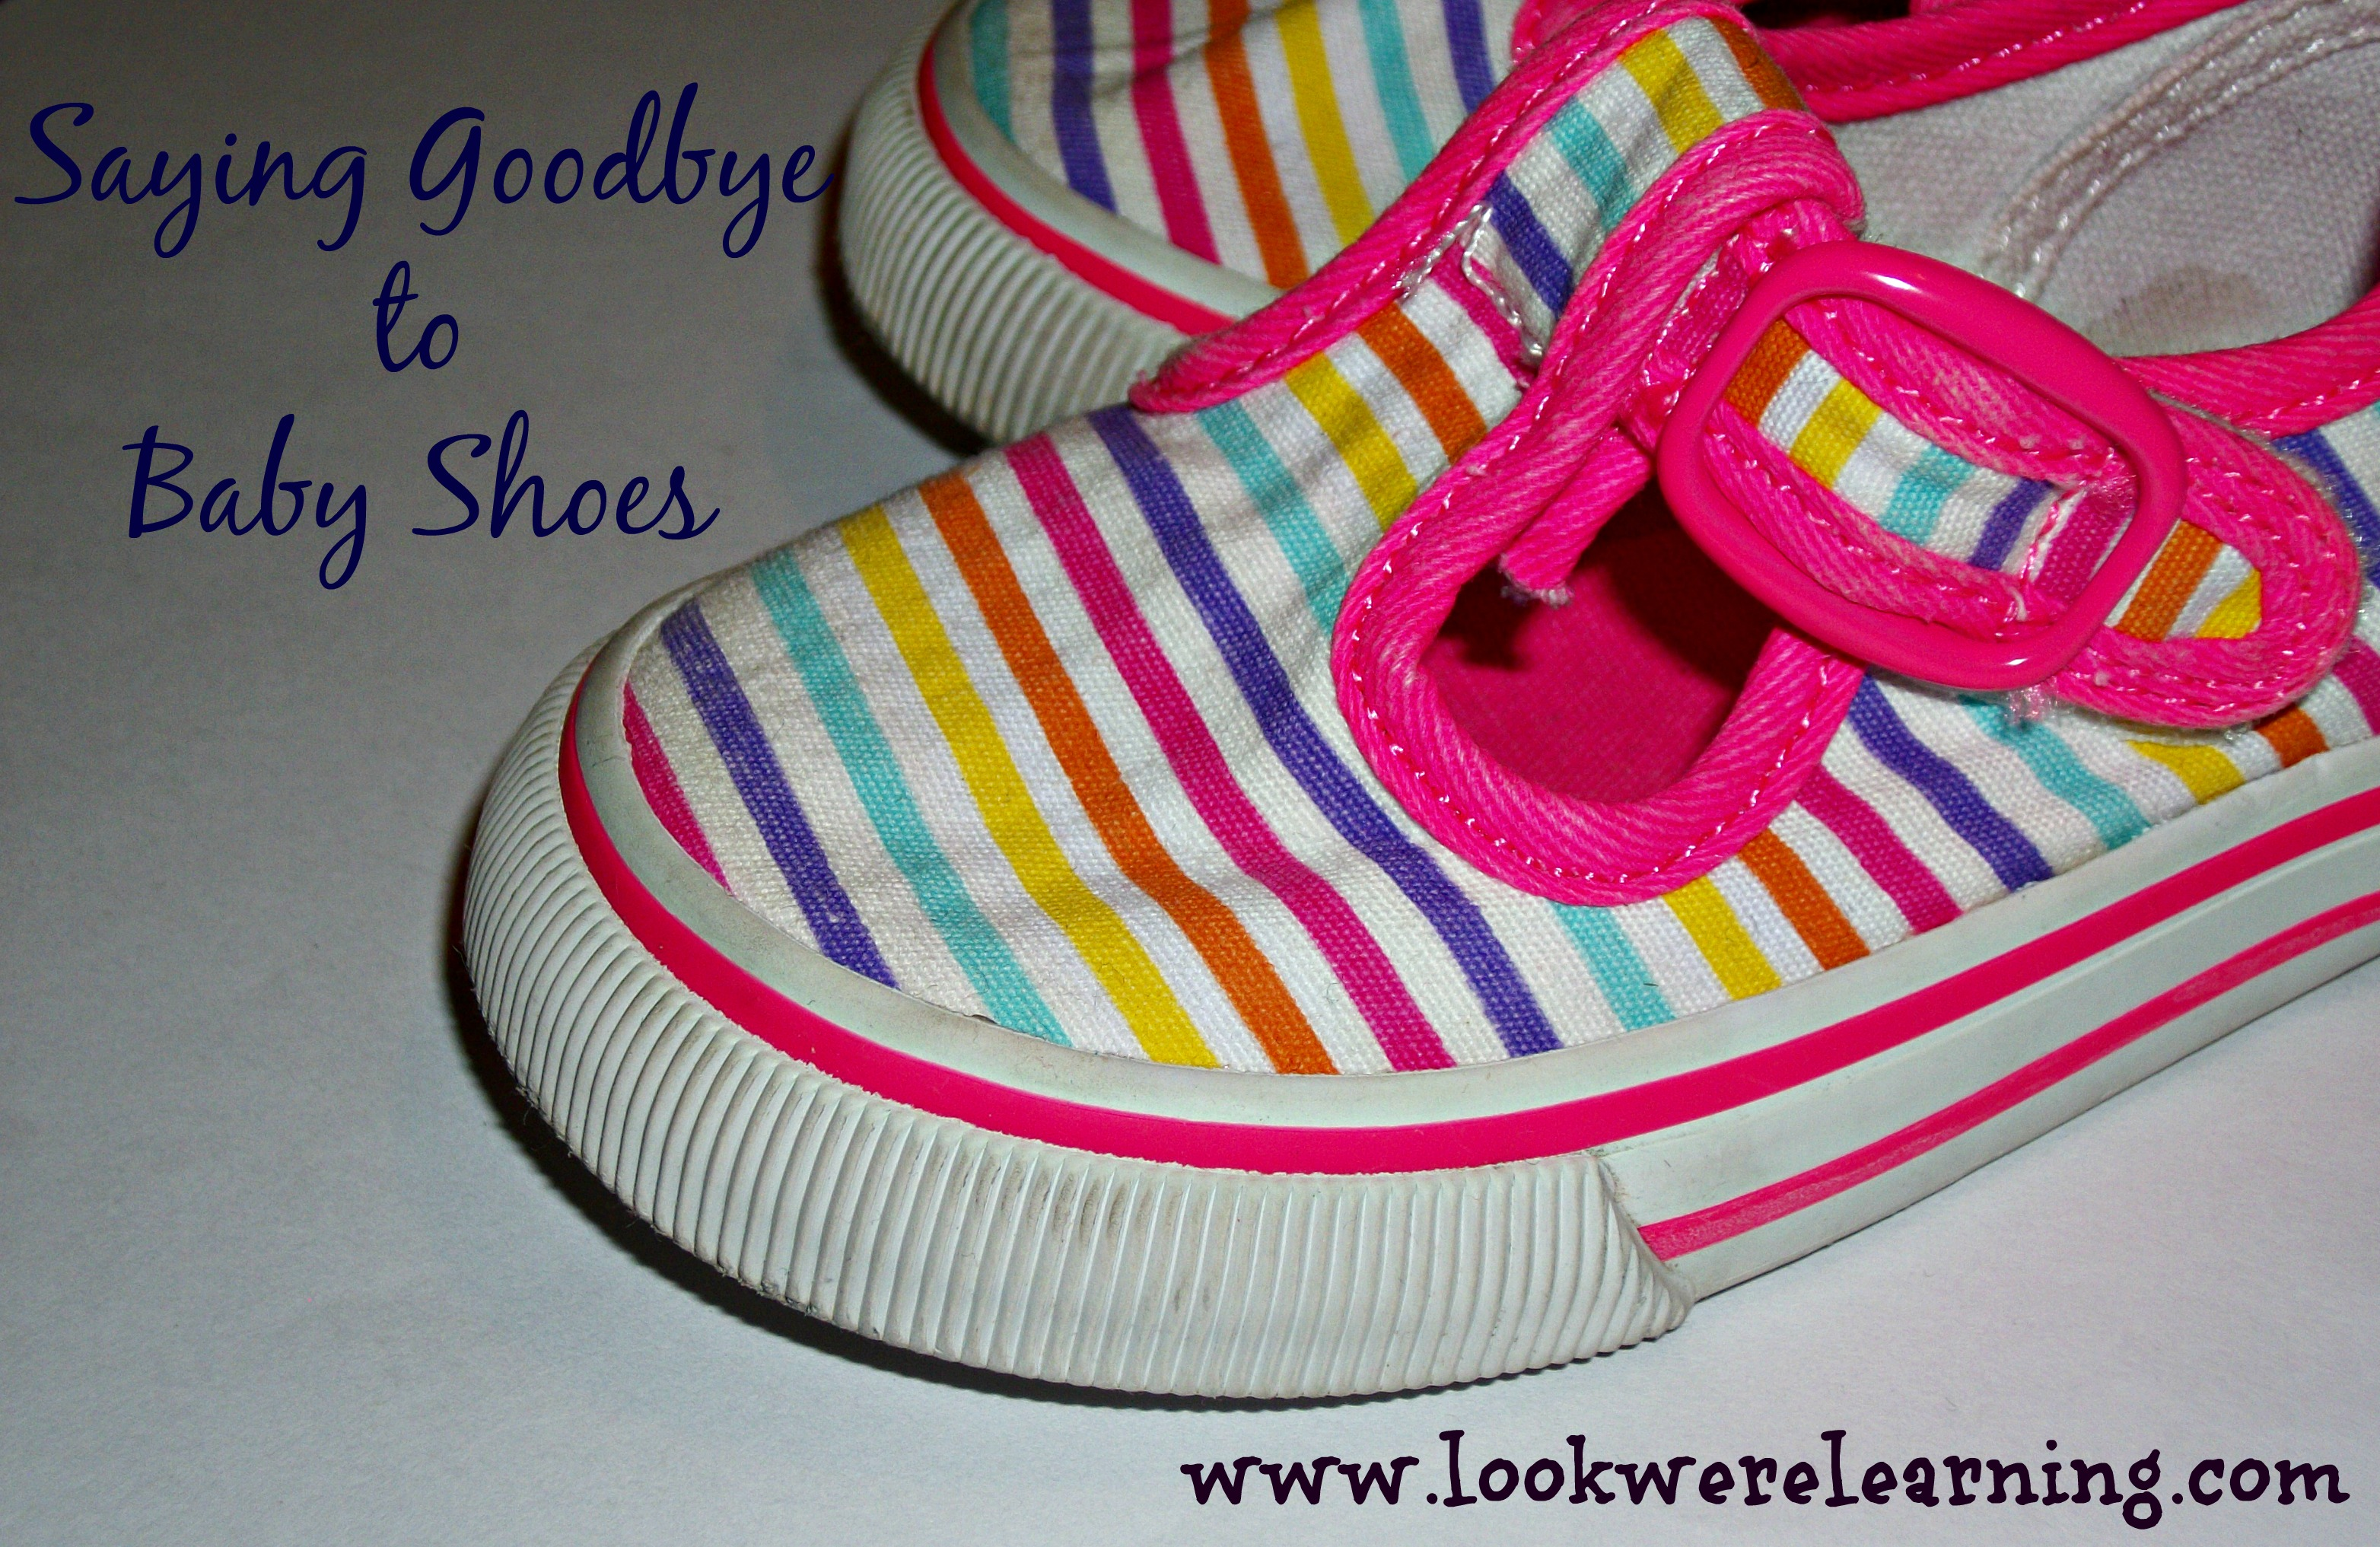 Saying Goodbye to Baby Shoes - Look! We're Learning!